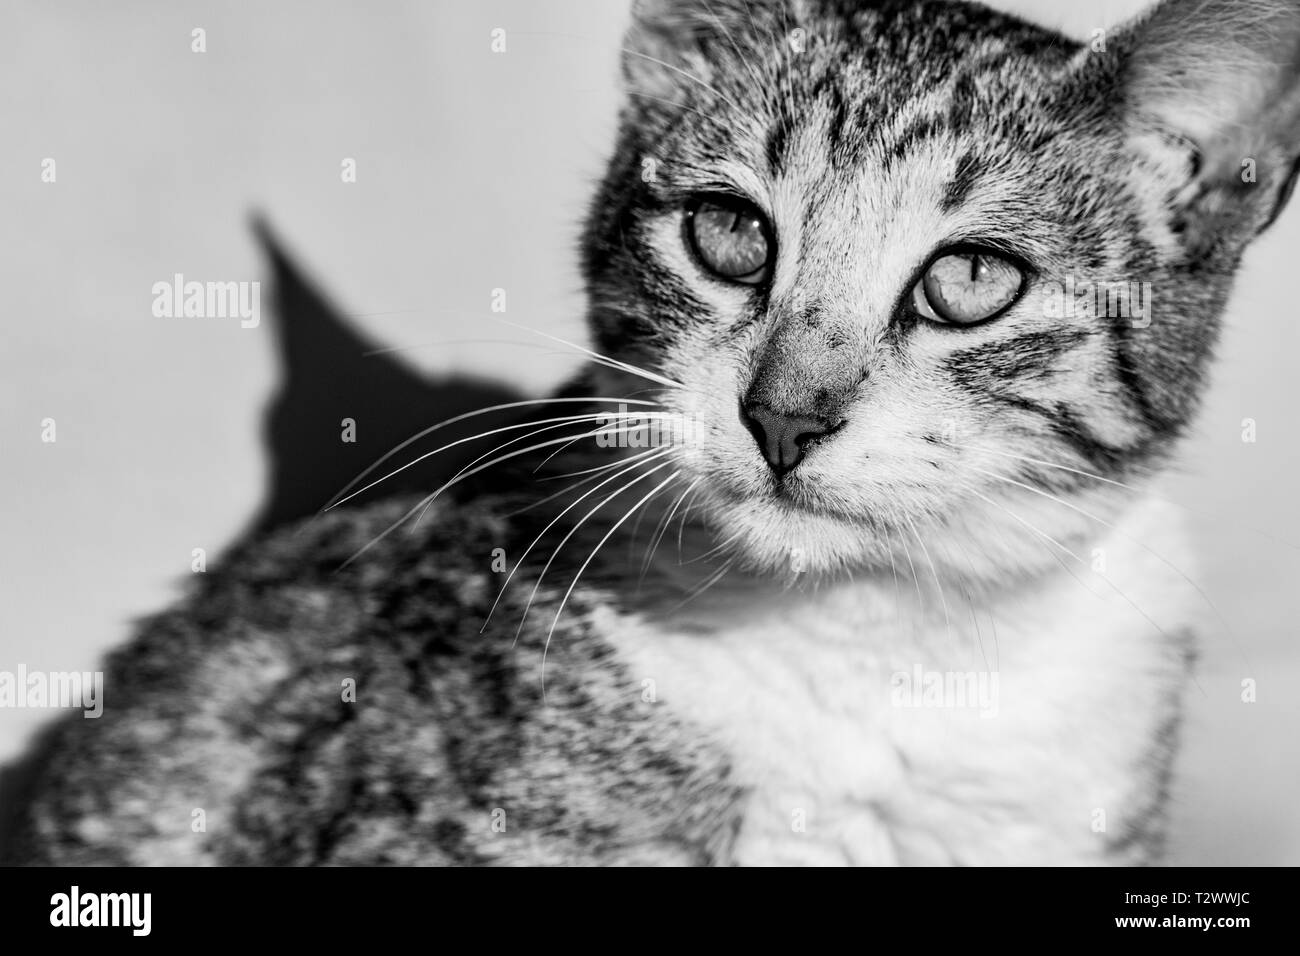 Black and white image of tabby cat imaging looking towards the sun Stock Photo